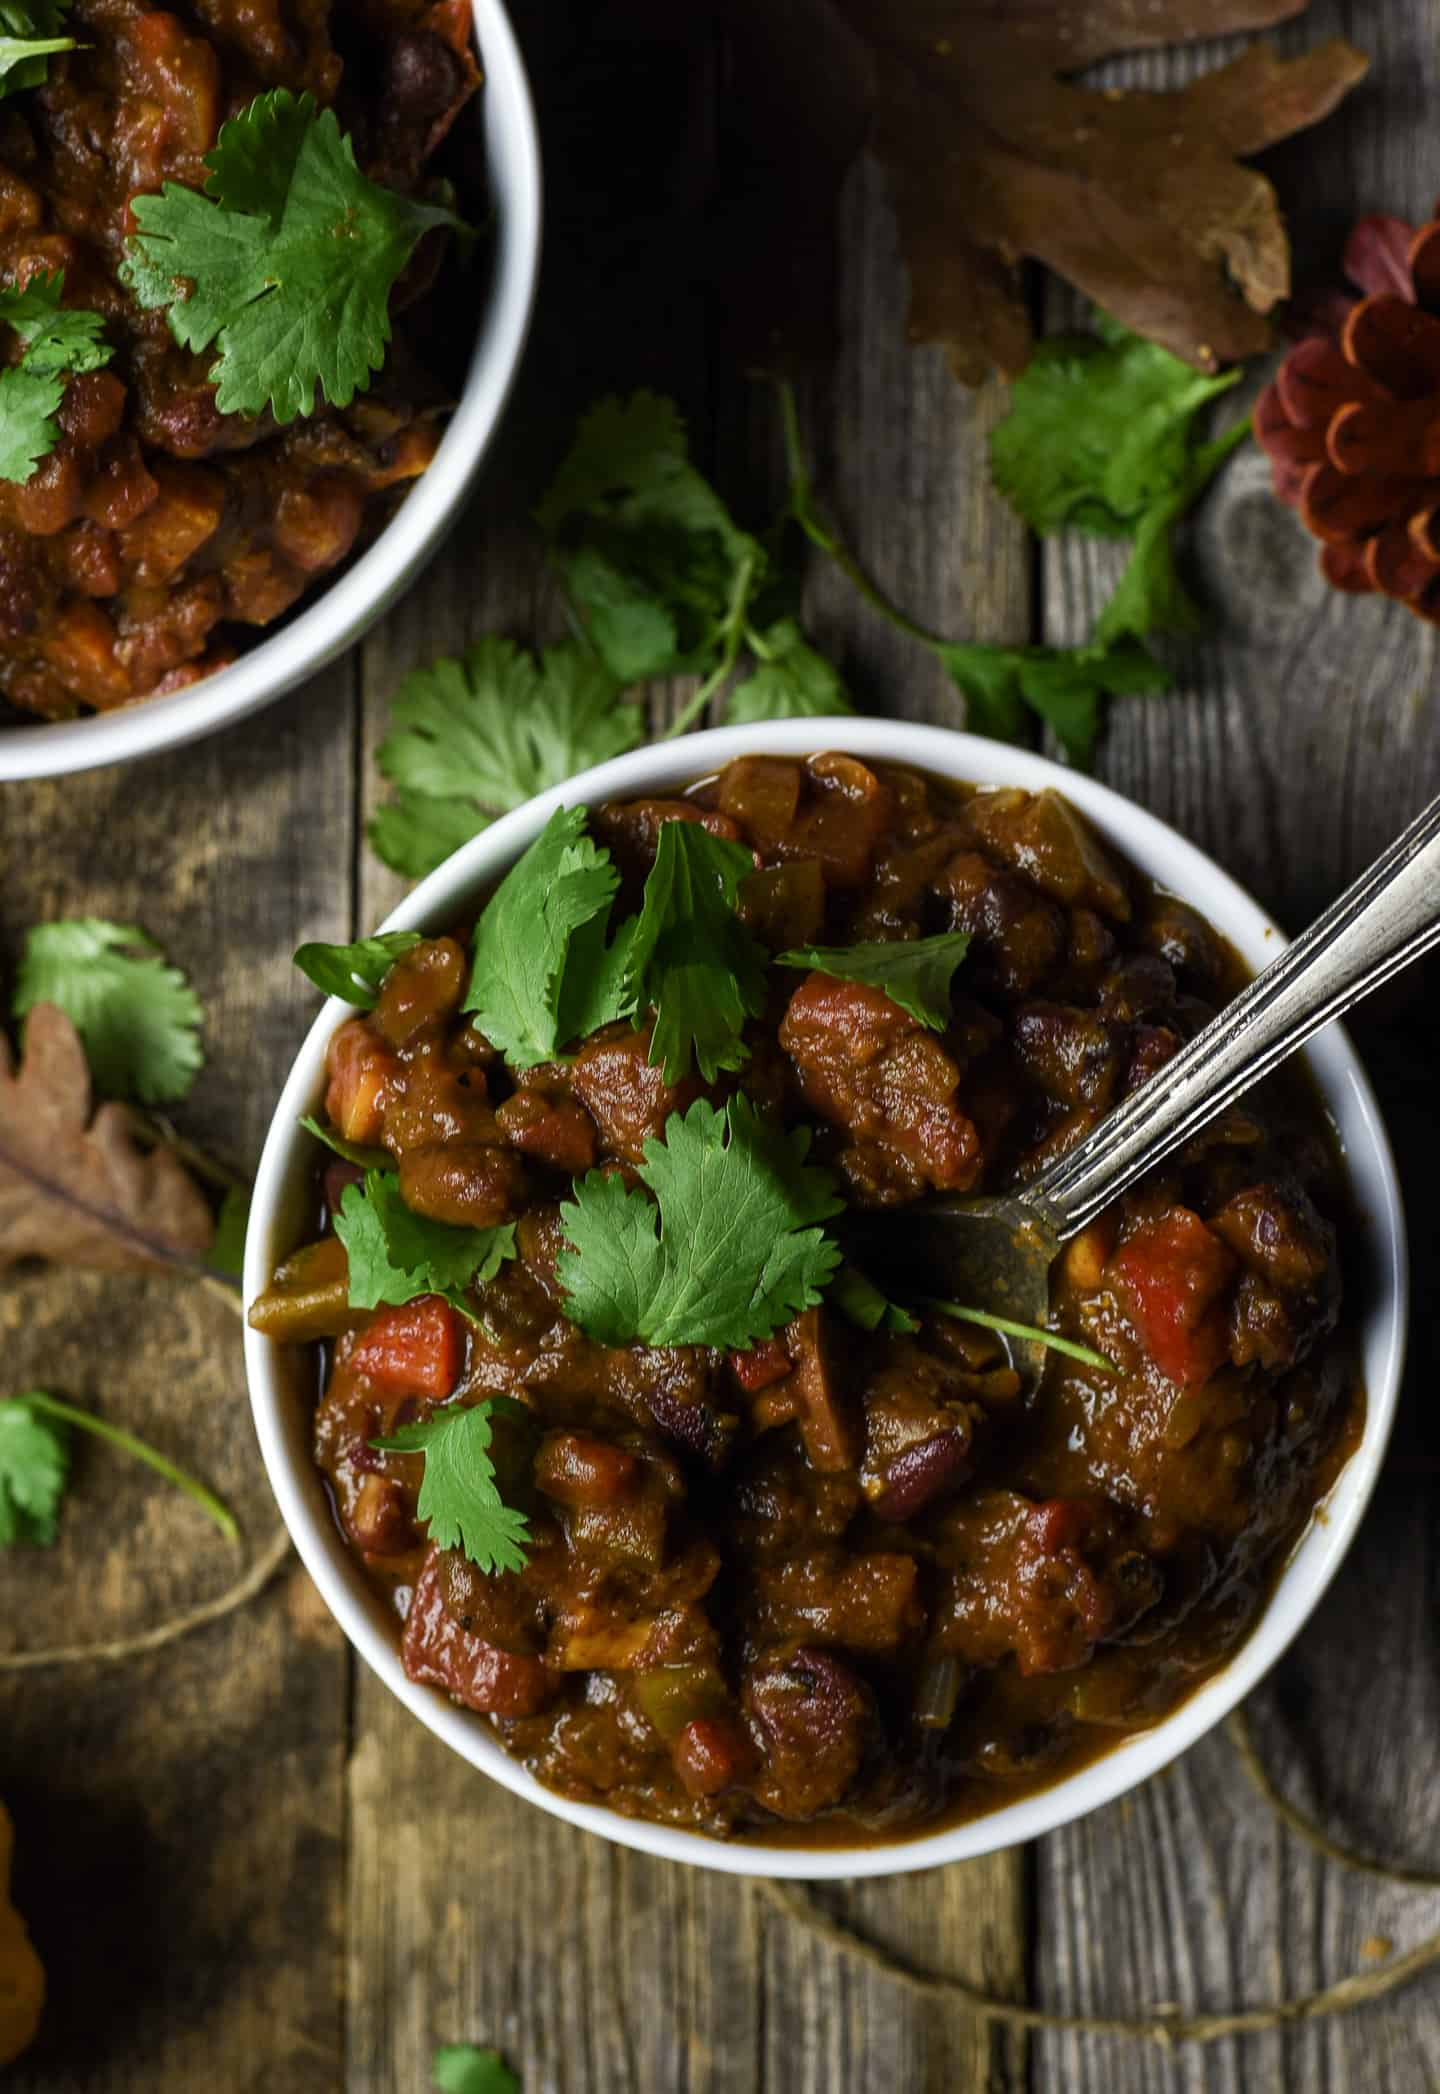 Bowl of chili with cilantro.